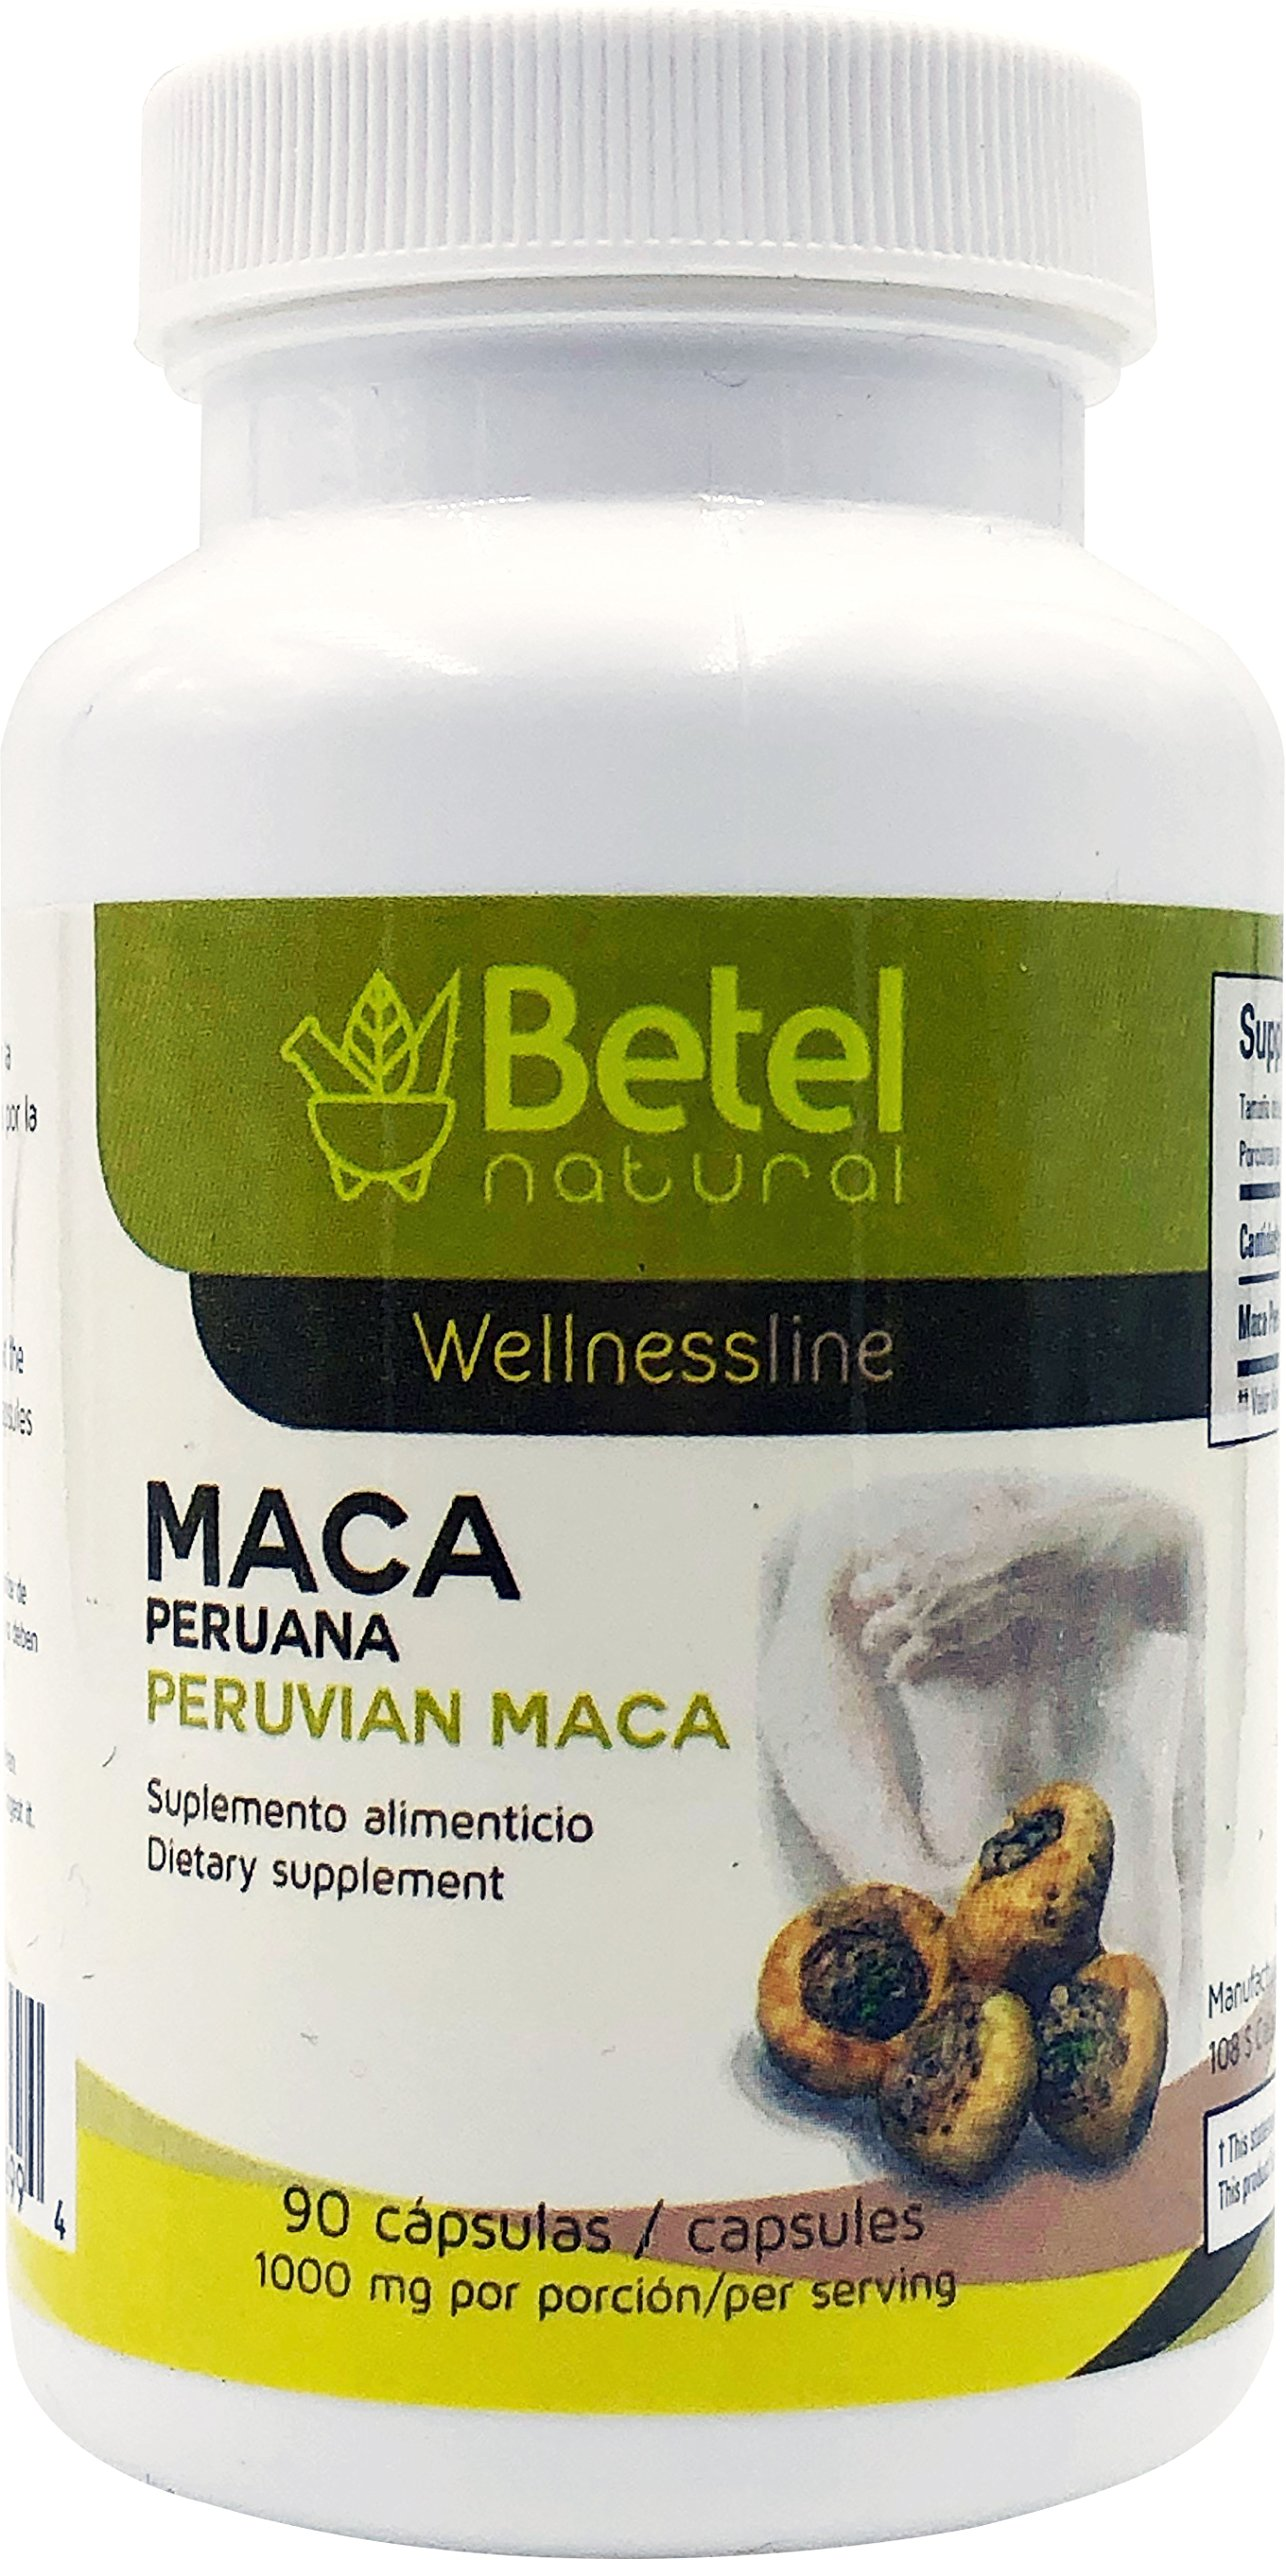 Peruvian Maca Capsules by Betel Natural - Amazing Libido and Hormonal Imbalance Support - 90 Count